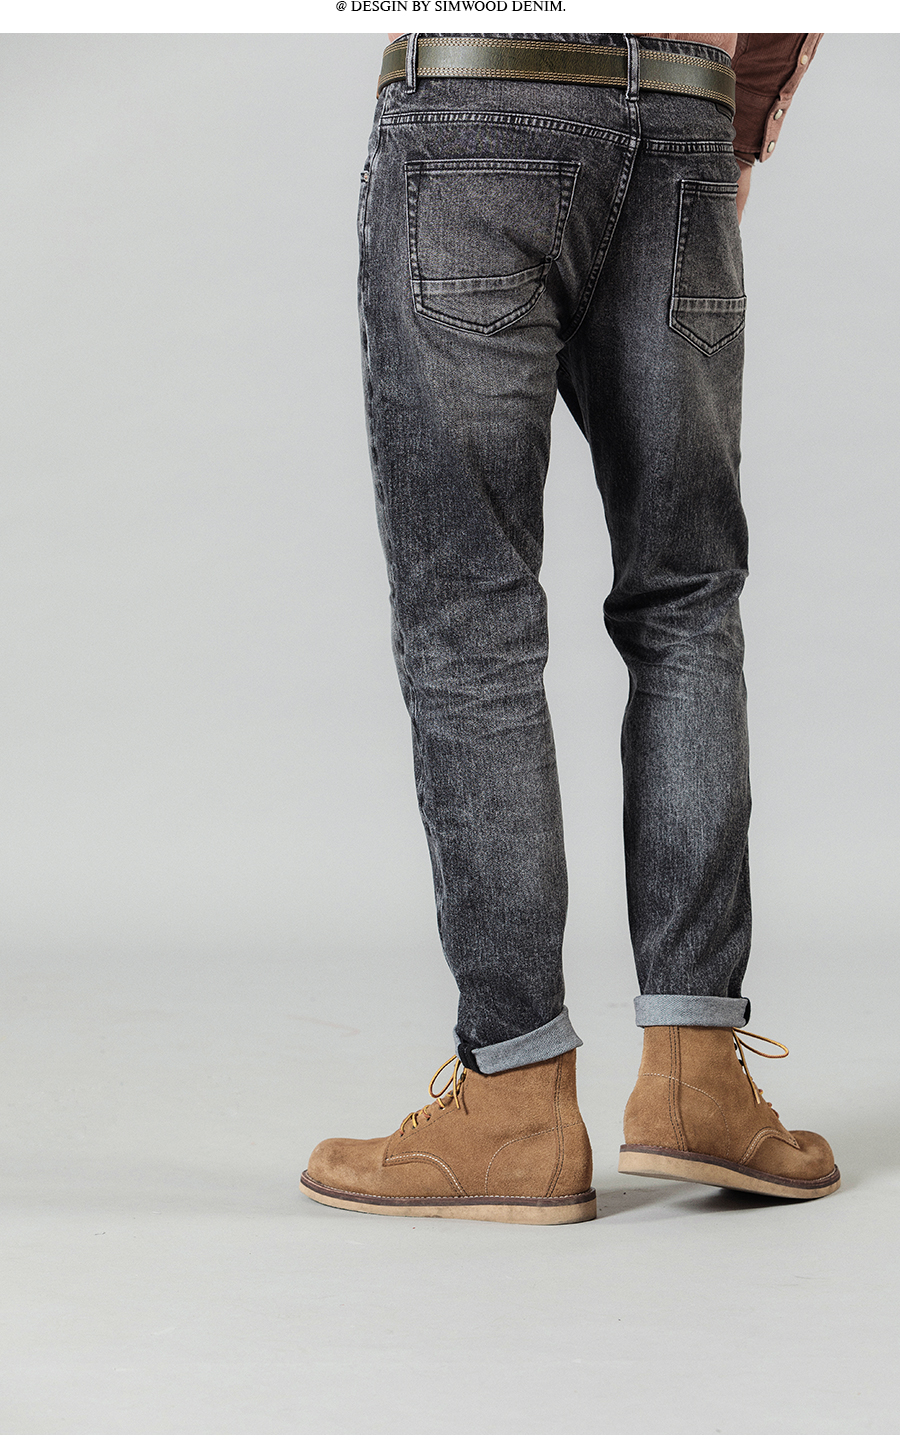 SIMWOOD 2020 New Jeans Men Classical Jean High Quality Straight Leg Male Casual Pants Plus Size Cotton Denim Trousers  180348 24